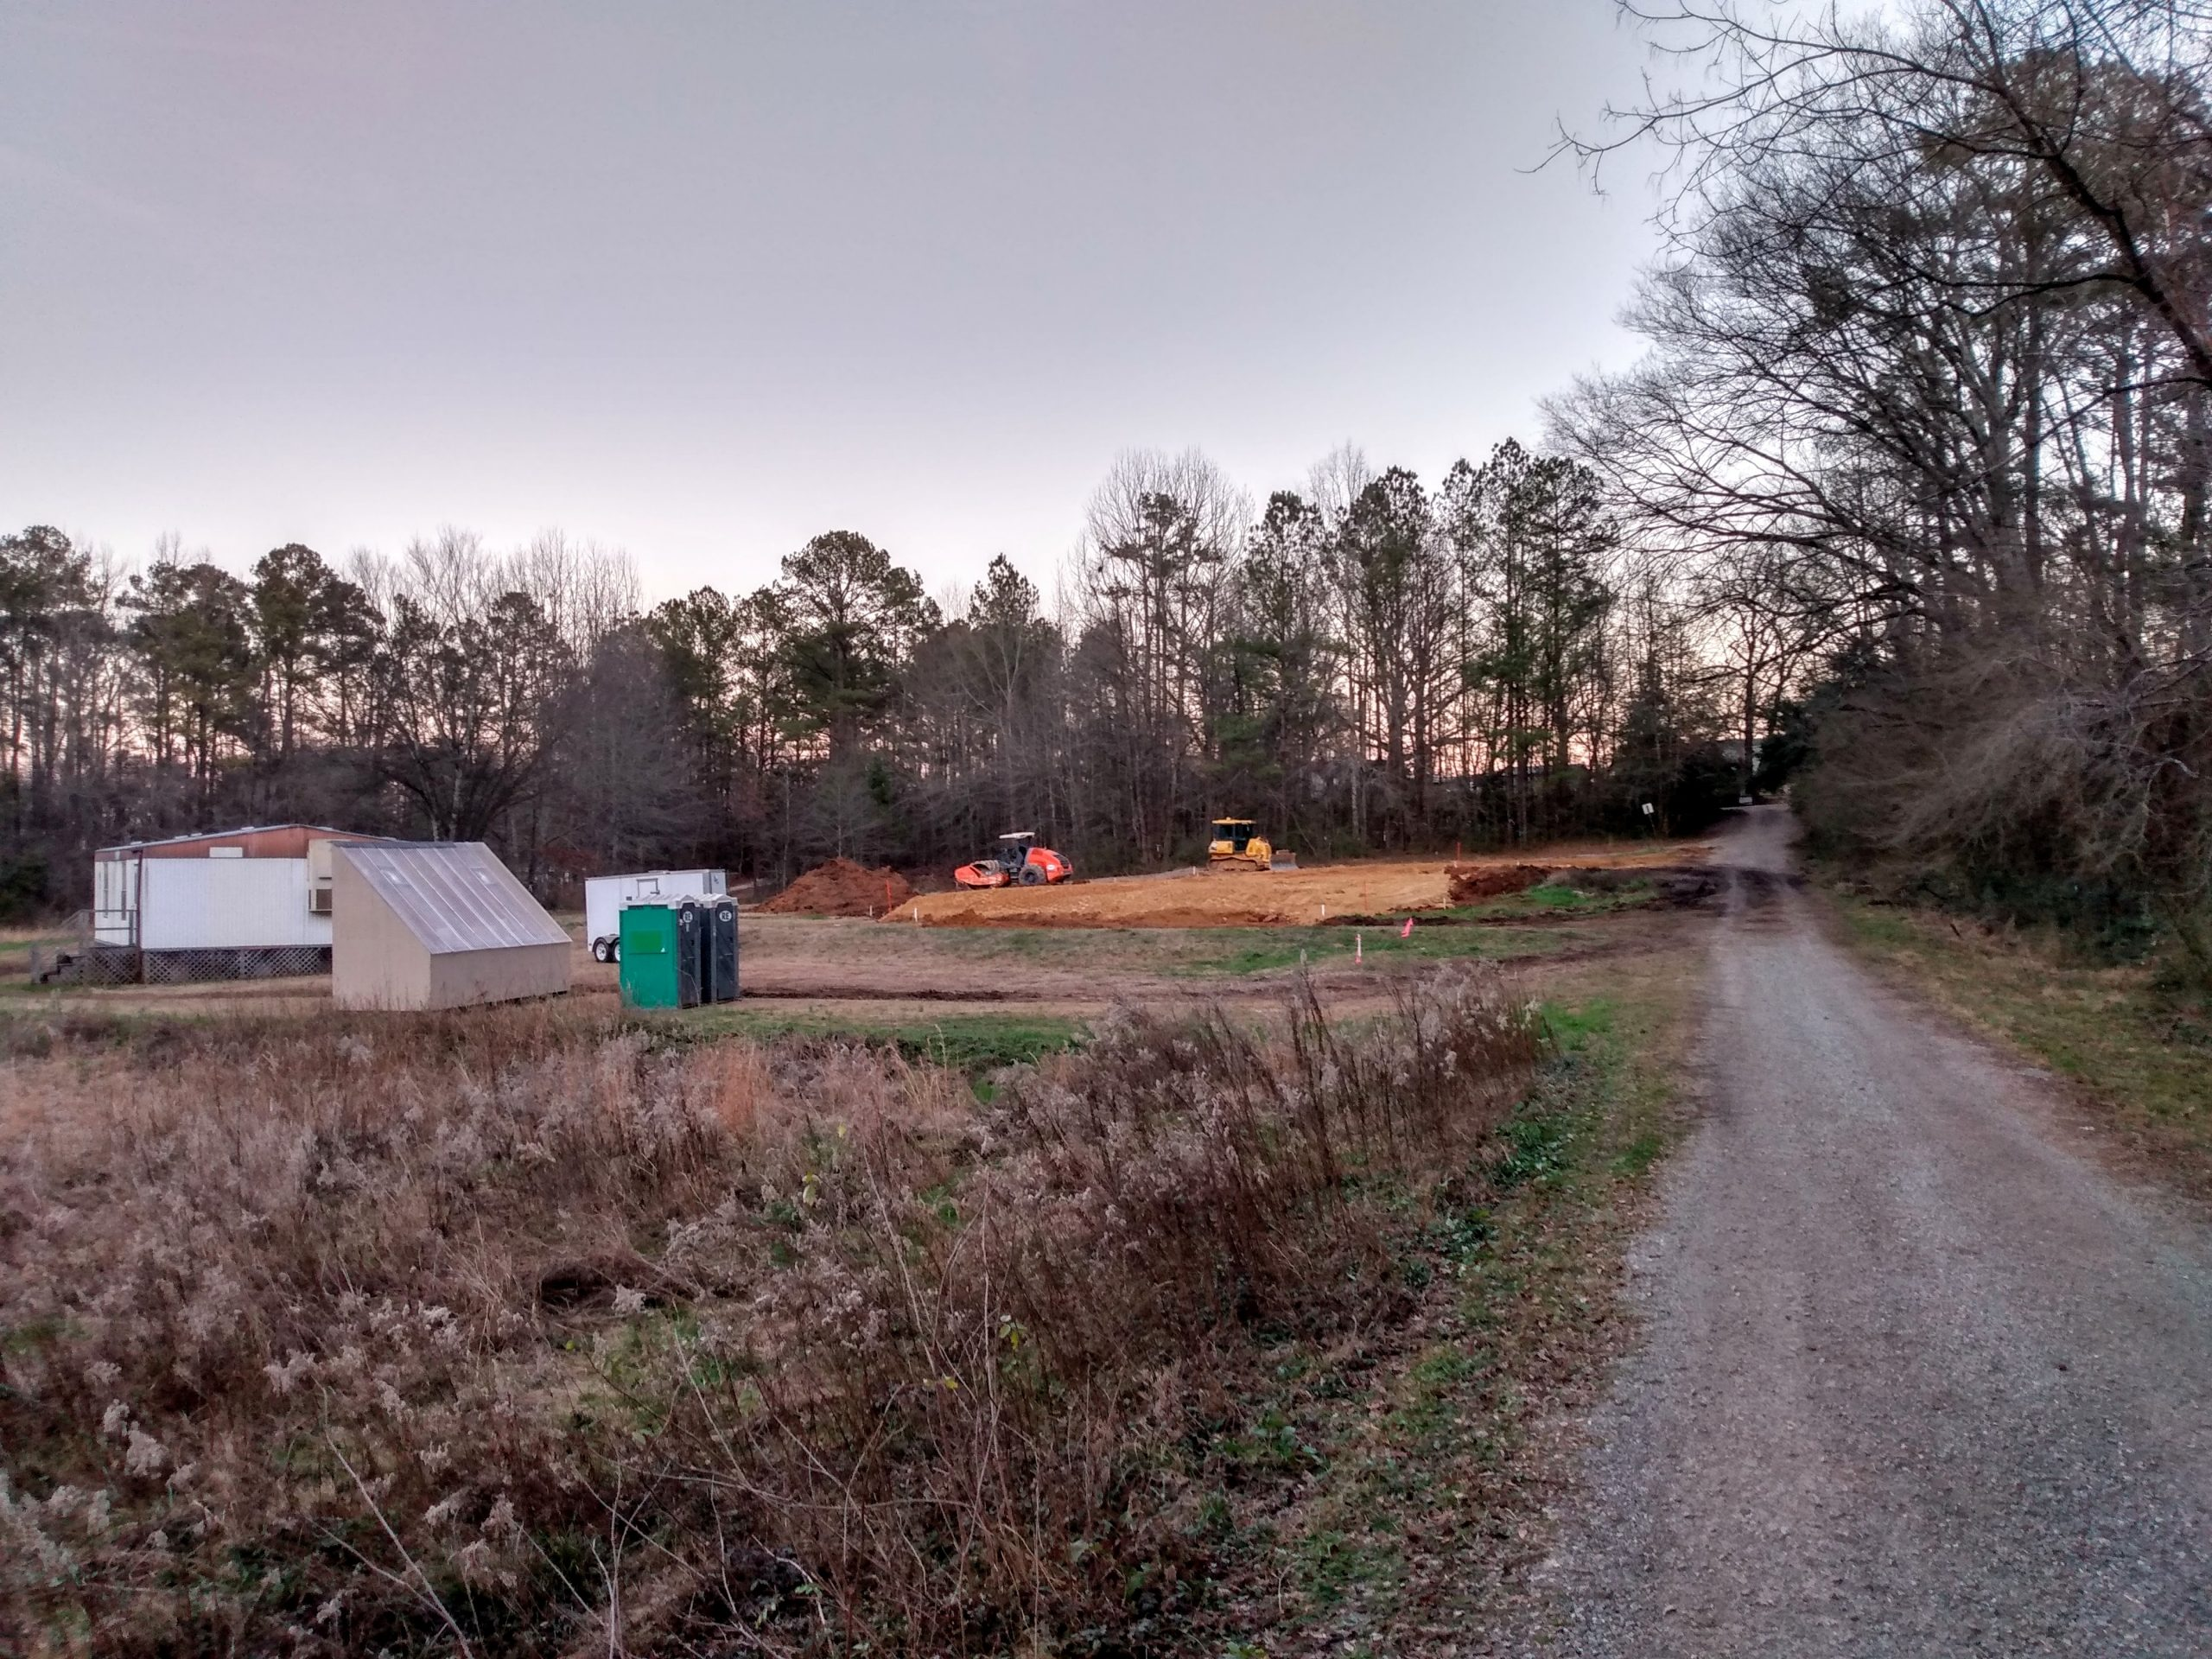 Field in foreground with classroom trailer, solar kiln, and construction site in background.